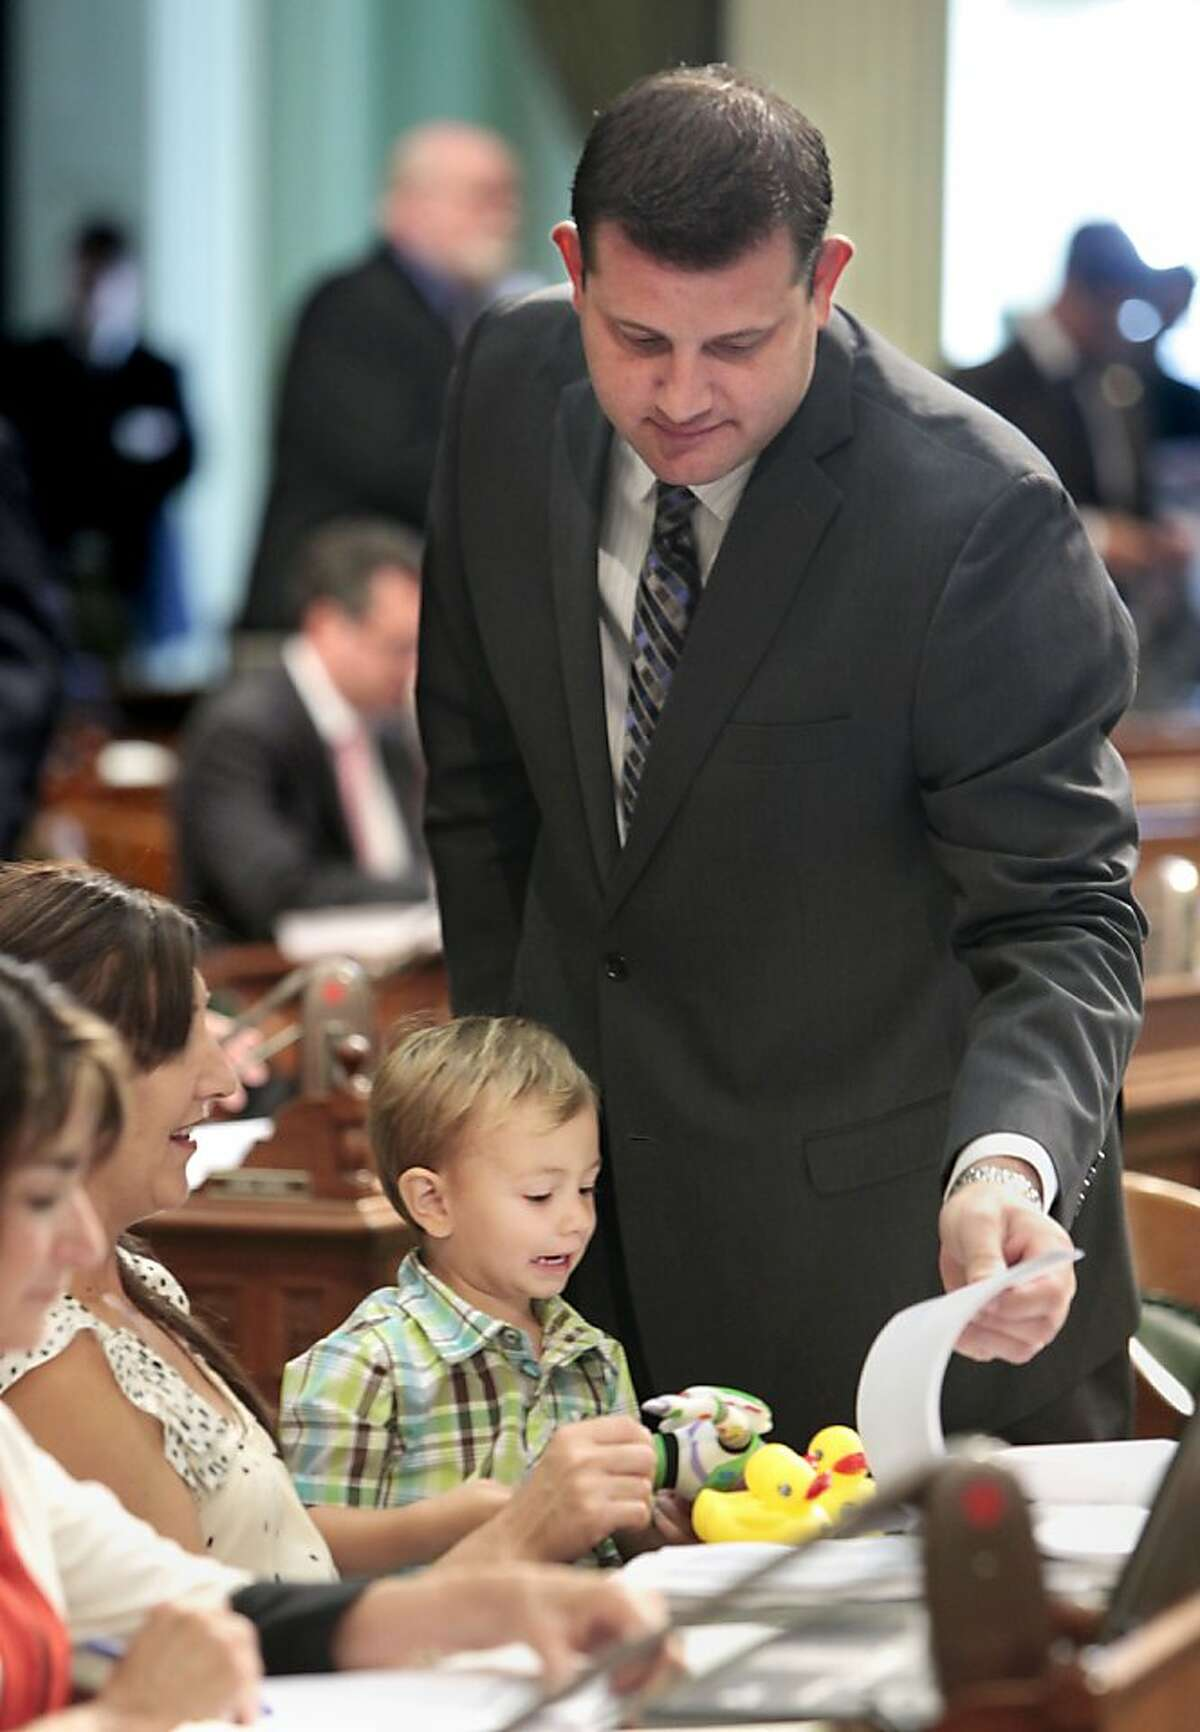 Lucas Valadao, 2, grimaces as he looks over the paper work his father, Assemblyman David Valadao, R-Hanford, was reviewing, at the Capitol in Sacramento, Calif., Thursday, June 28, 2012. Valadao's children and wife Terra, second from left, accompanied the lawmaker during Thursday's Assembly session. At left is Assemblywoman Diane Harkey, R-Dana Point.(AP Photo/Rich Pedroncelli)